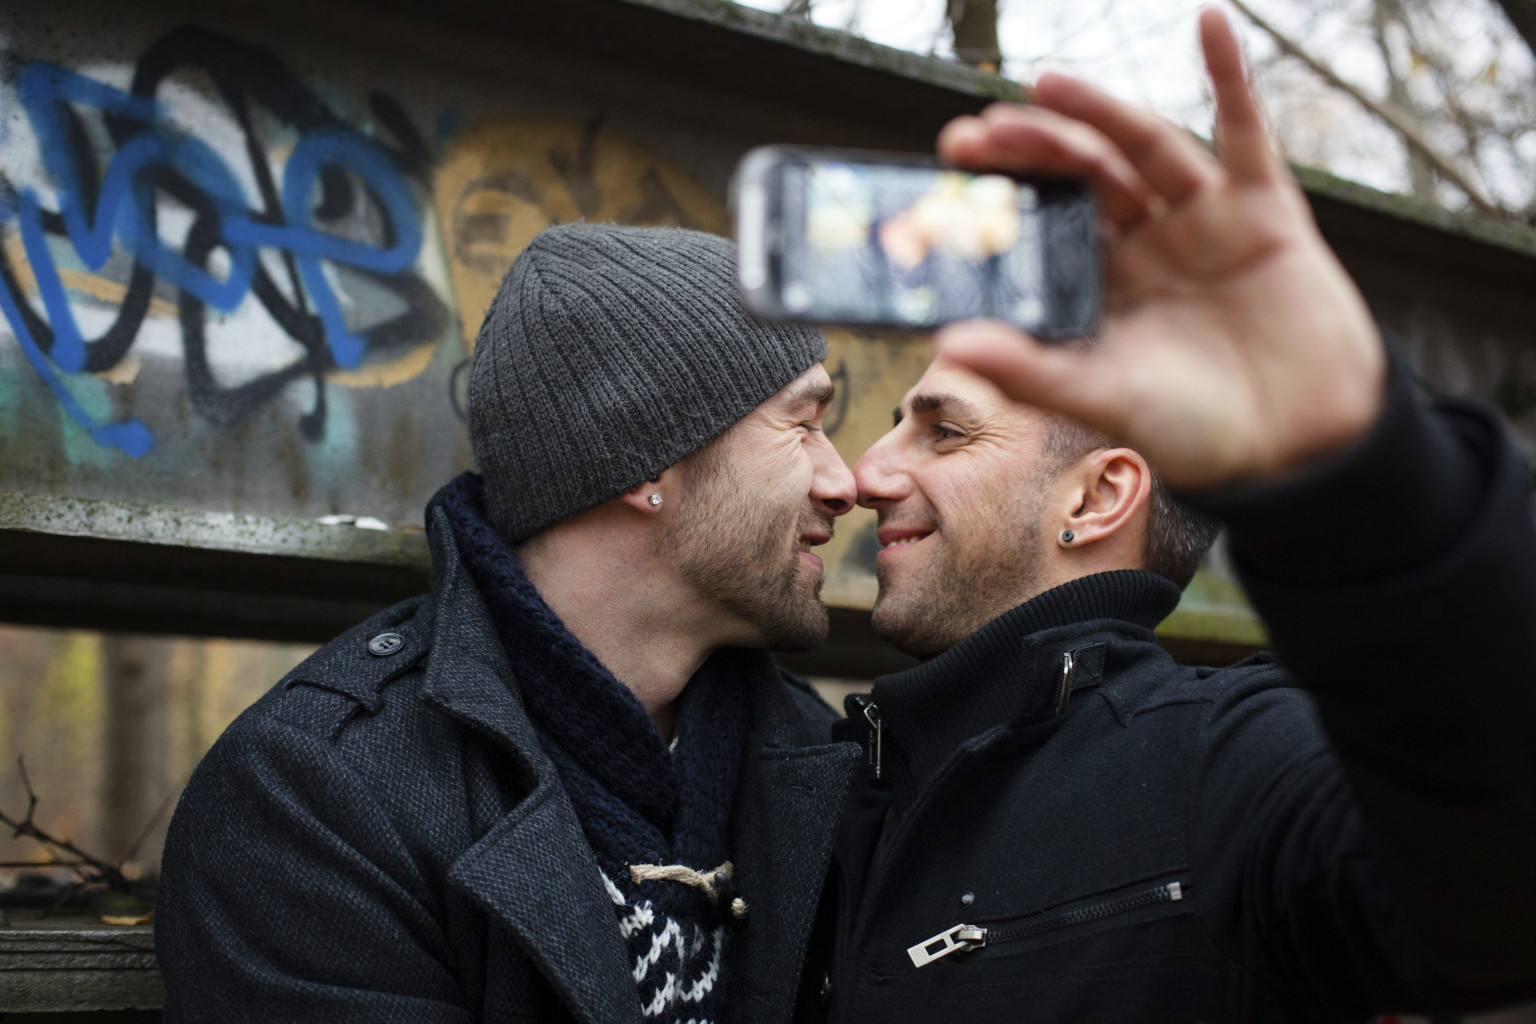 Download our free gay dating application to your smartphone